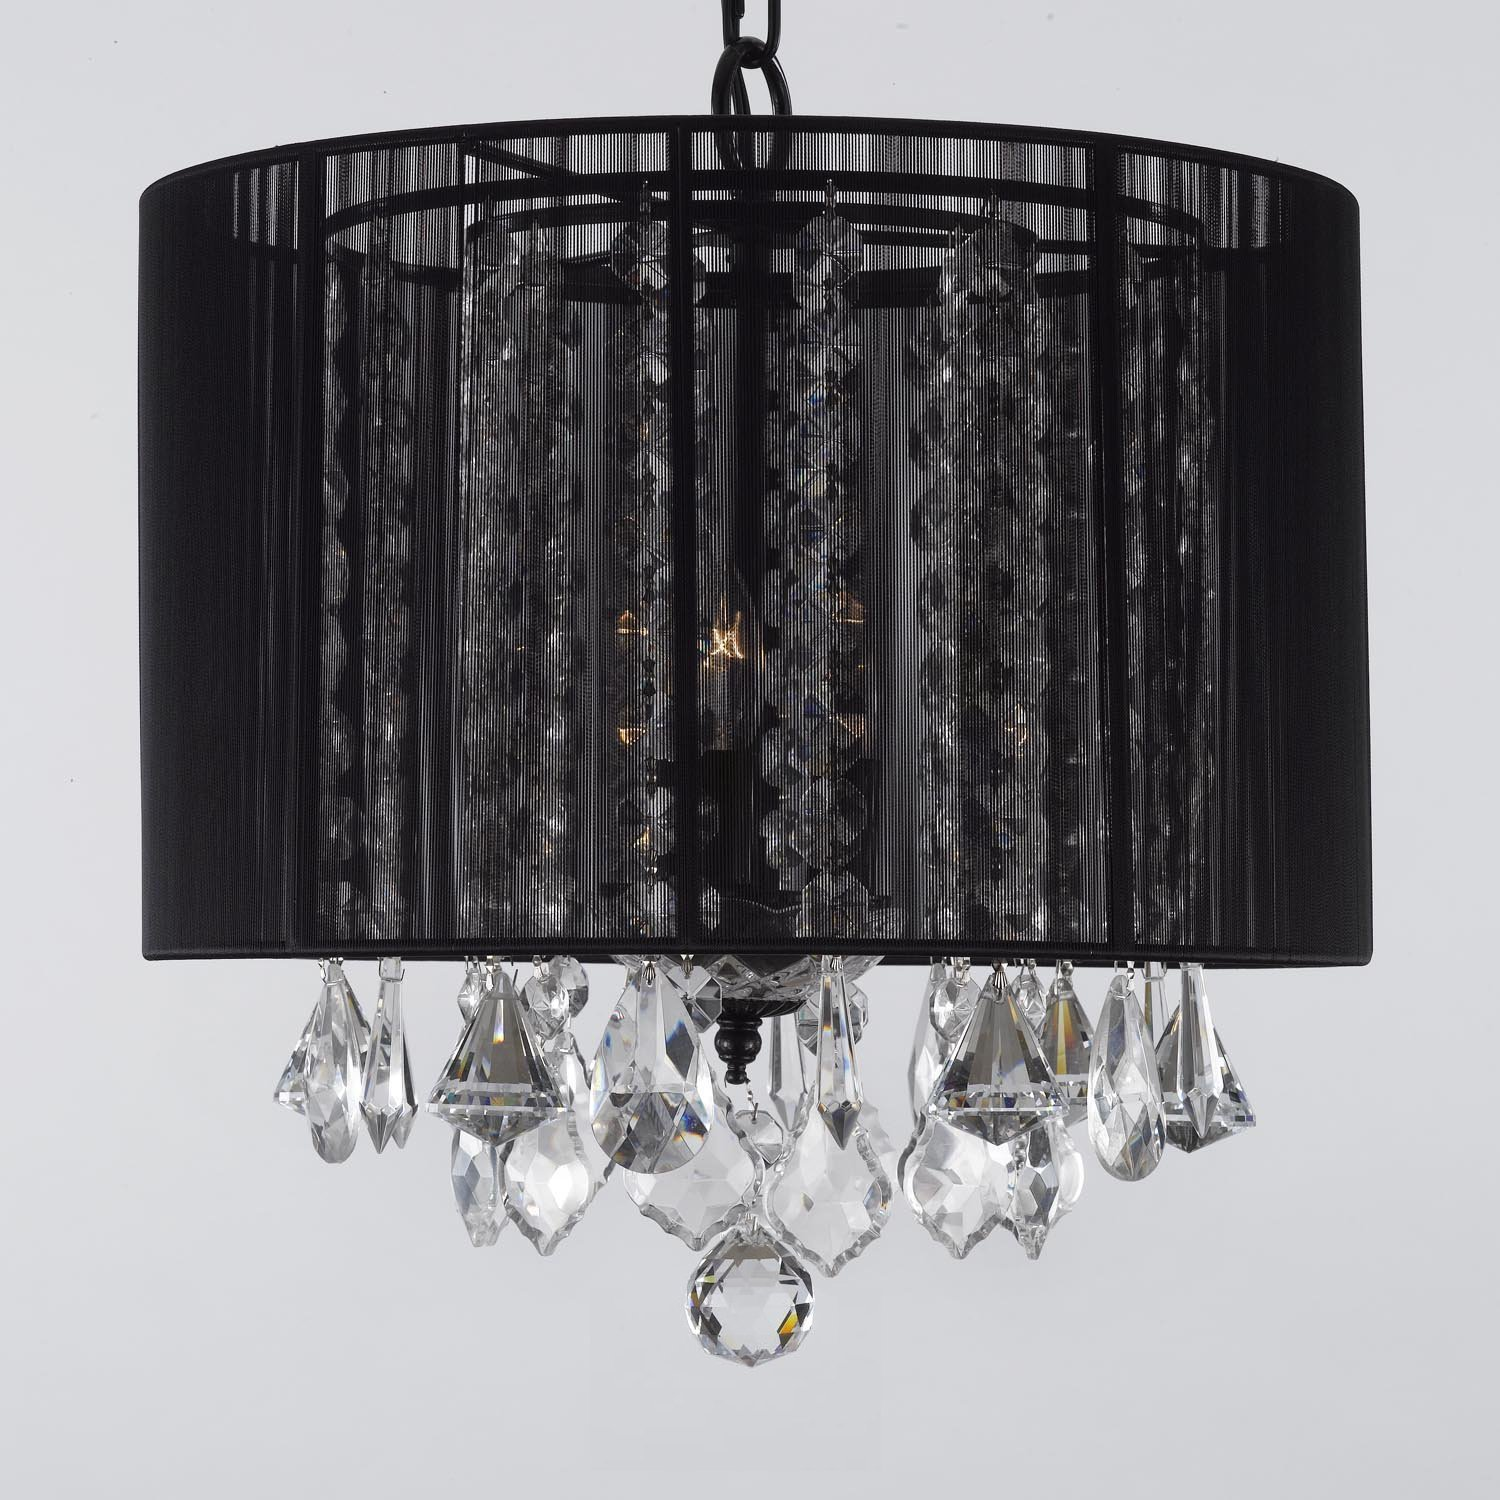 Crystal chandelier chandeliers with large black shade h15 x w15 crystal chandelier chandeliers with large black shade h15 x w15 home and garden products amazon arubaitofo Images